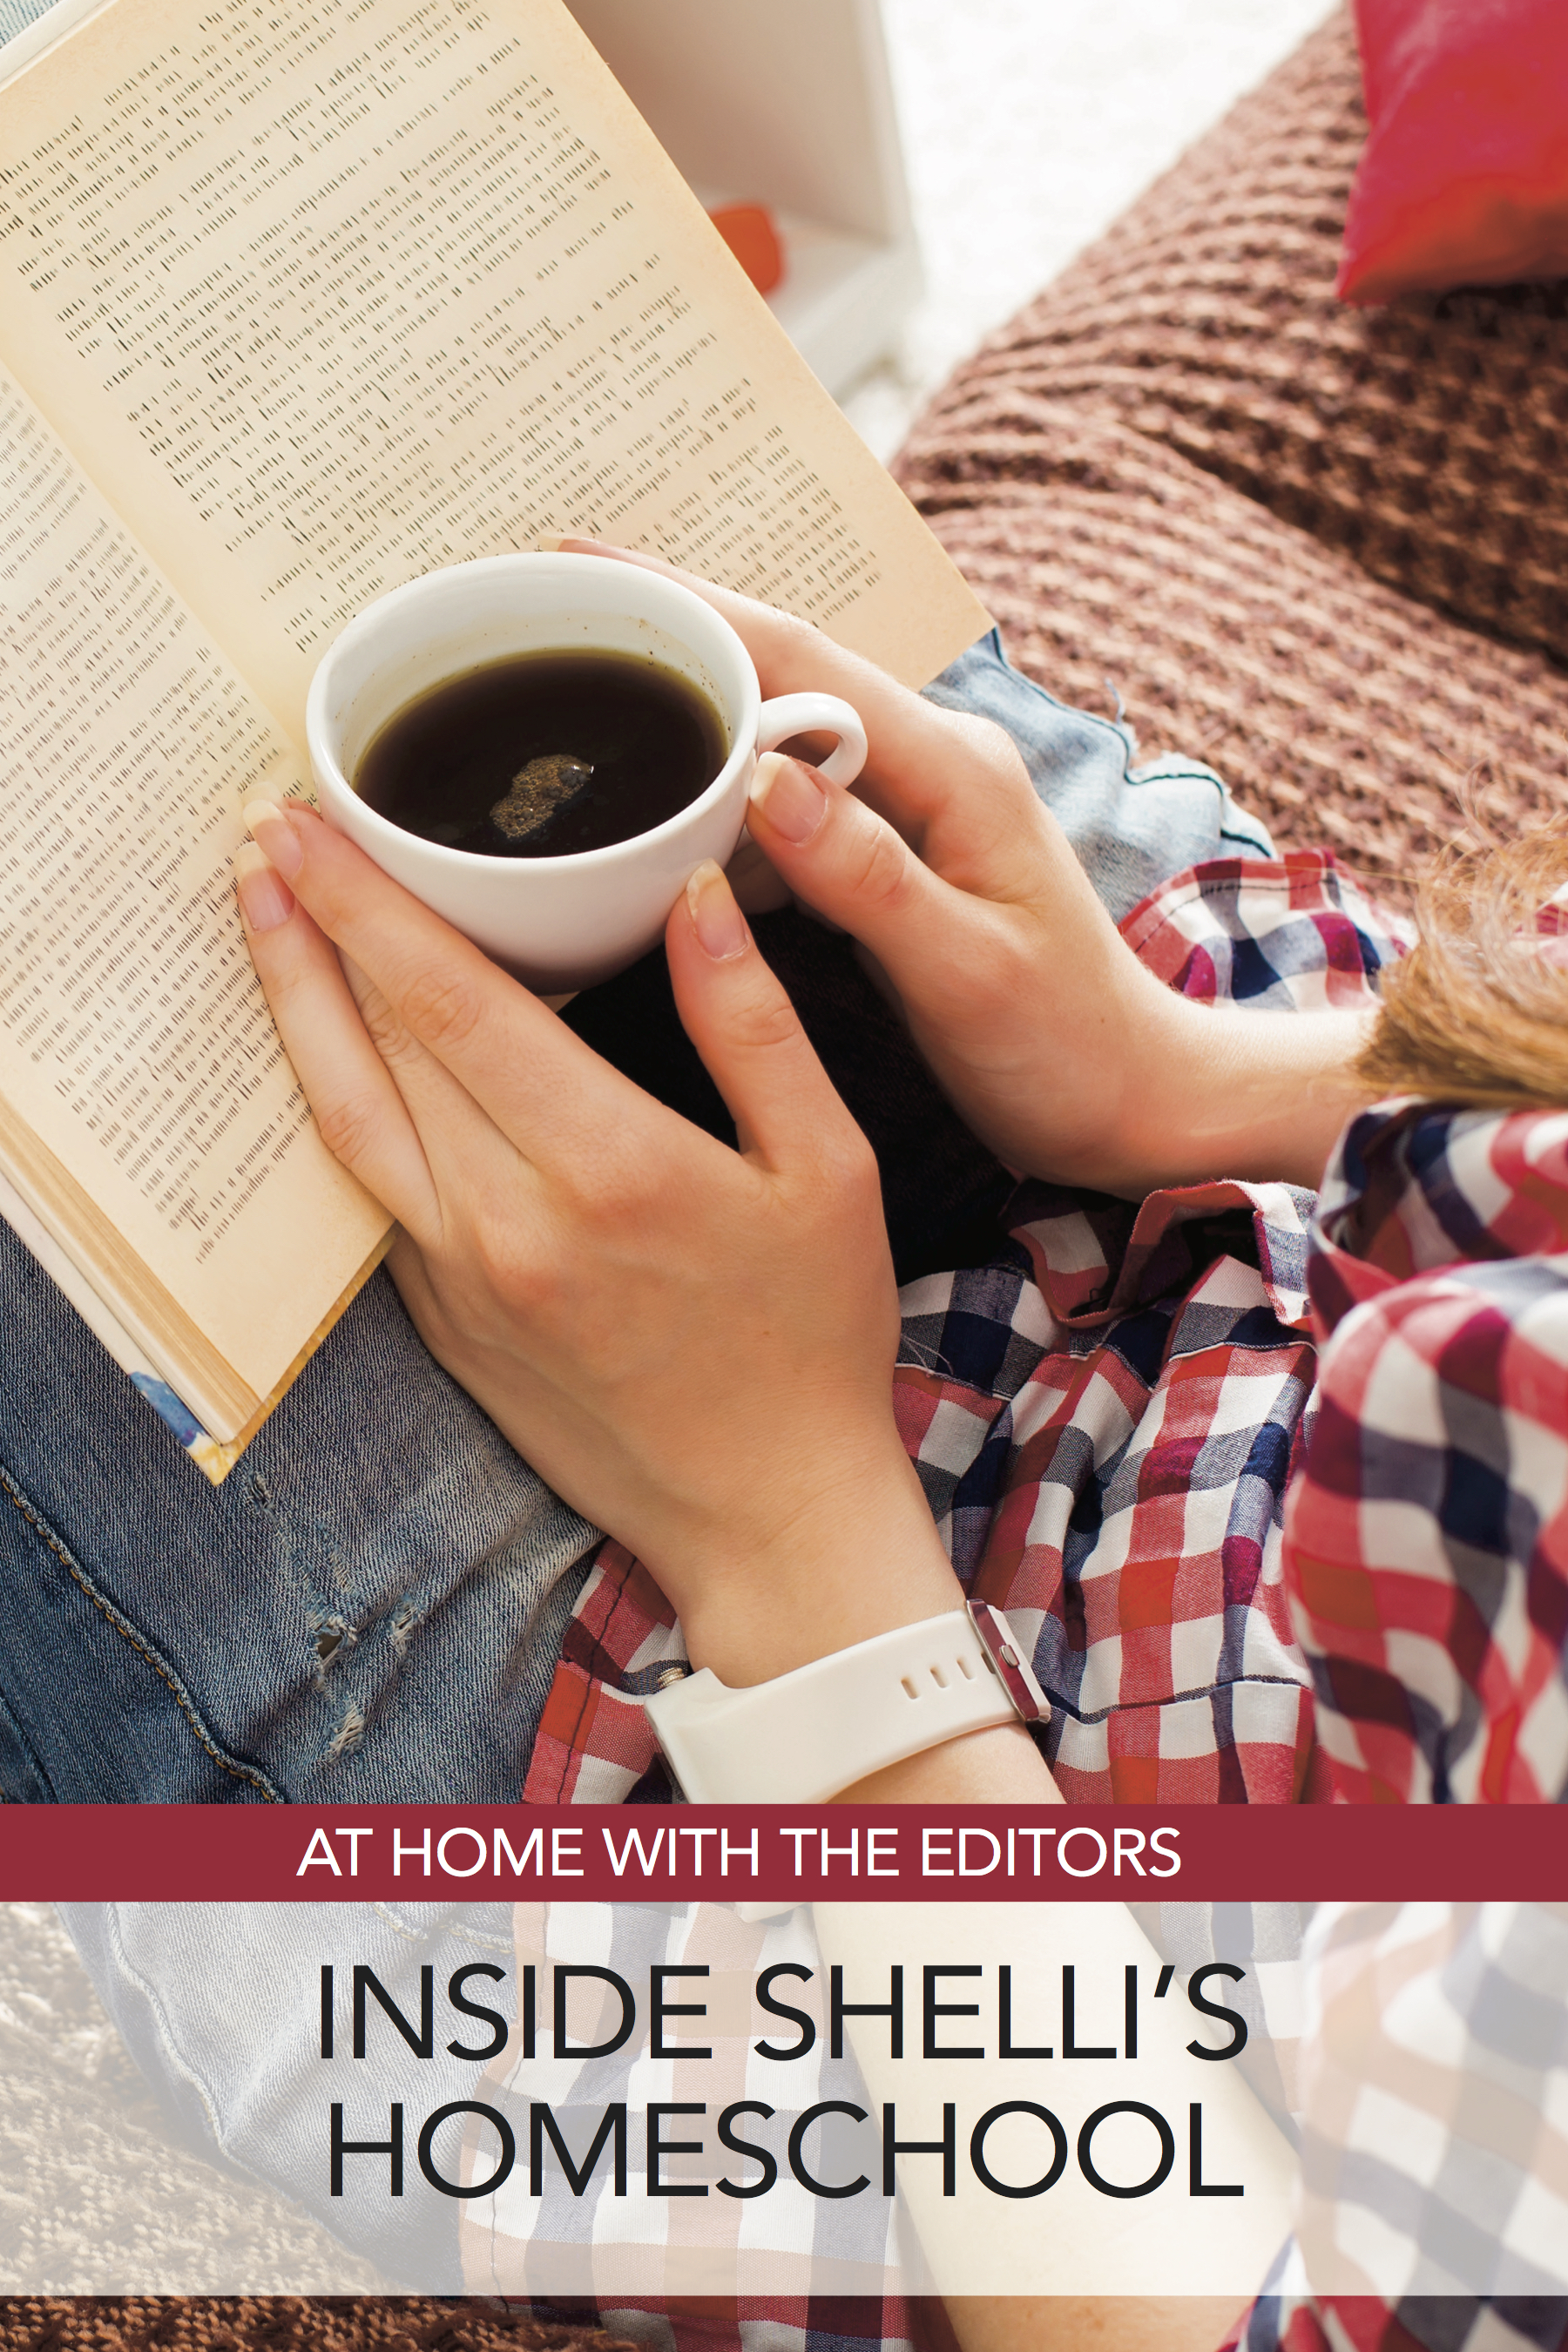 Inside Shelli's Homeschool: At Home with the Editors